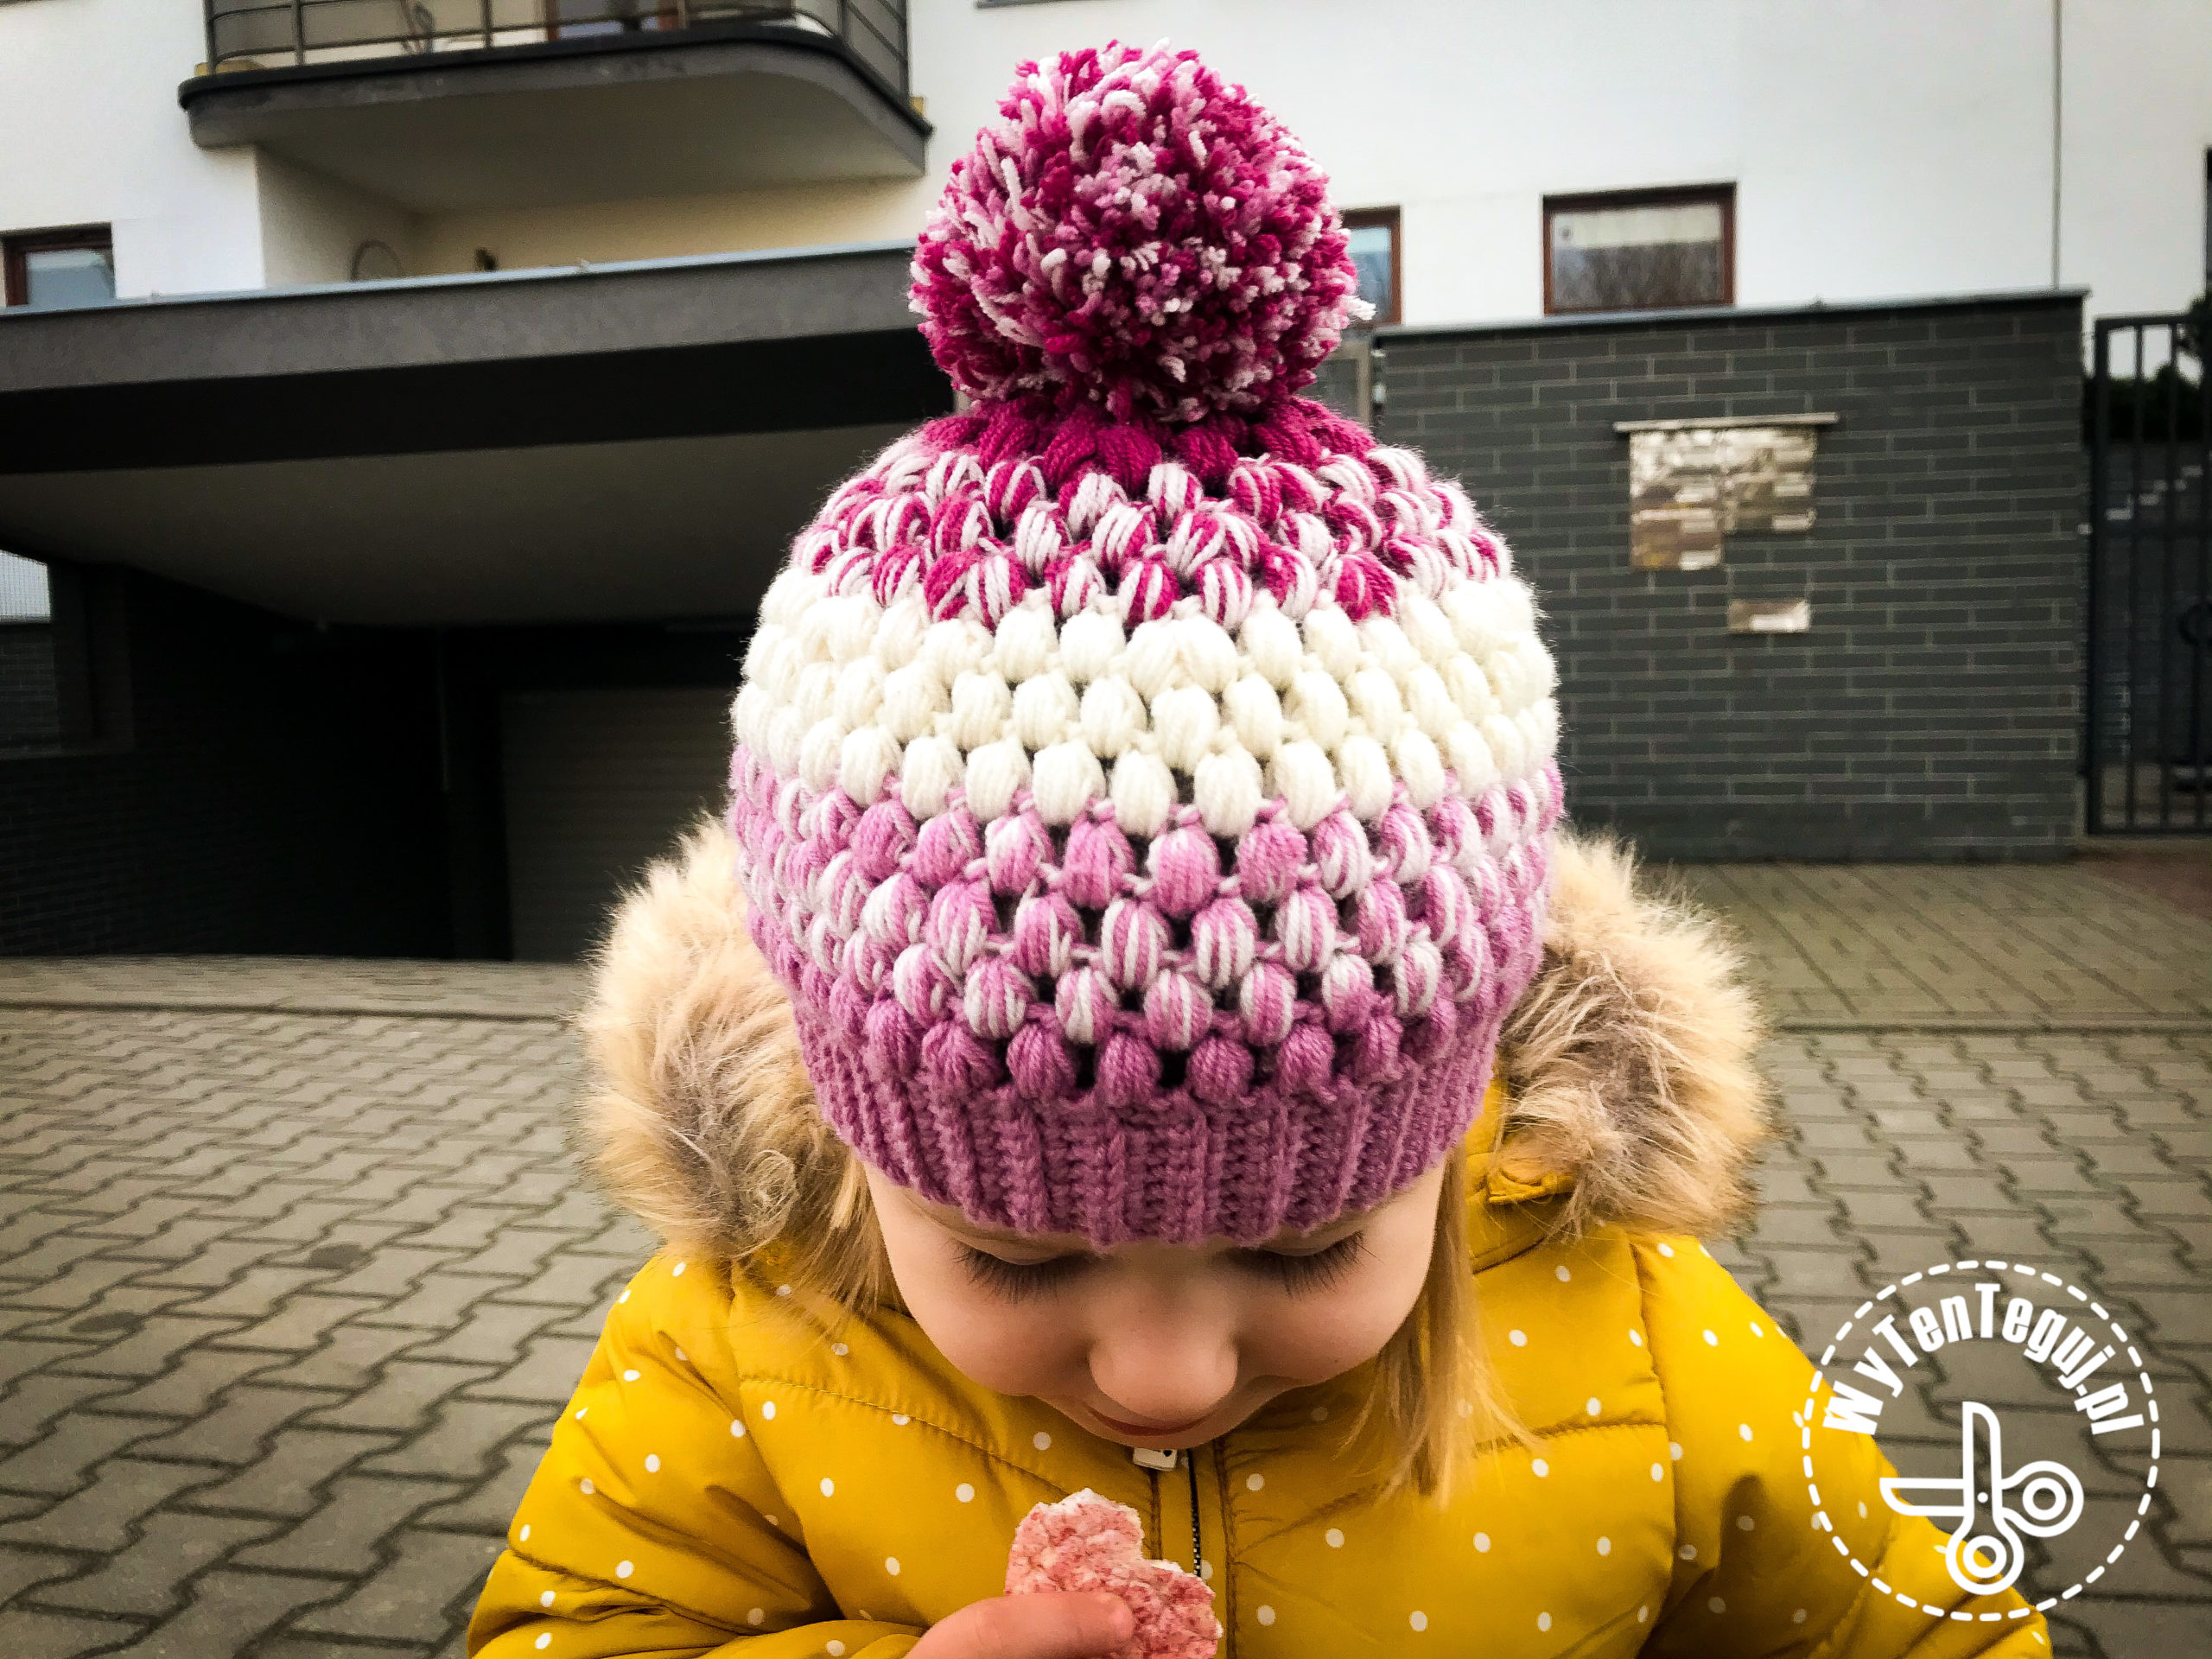 Crochet Hat Baby Gift | Crochet Baby Hat Valentine Gift | Beanie Hat Daughter Gift | Knit Hat Gift for Son | Slouchy Winter Hat